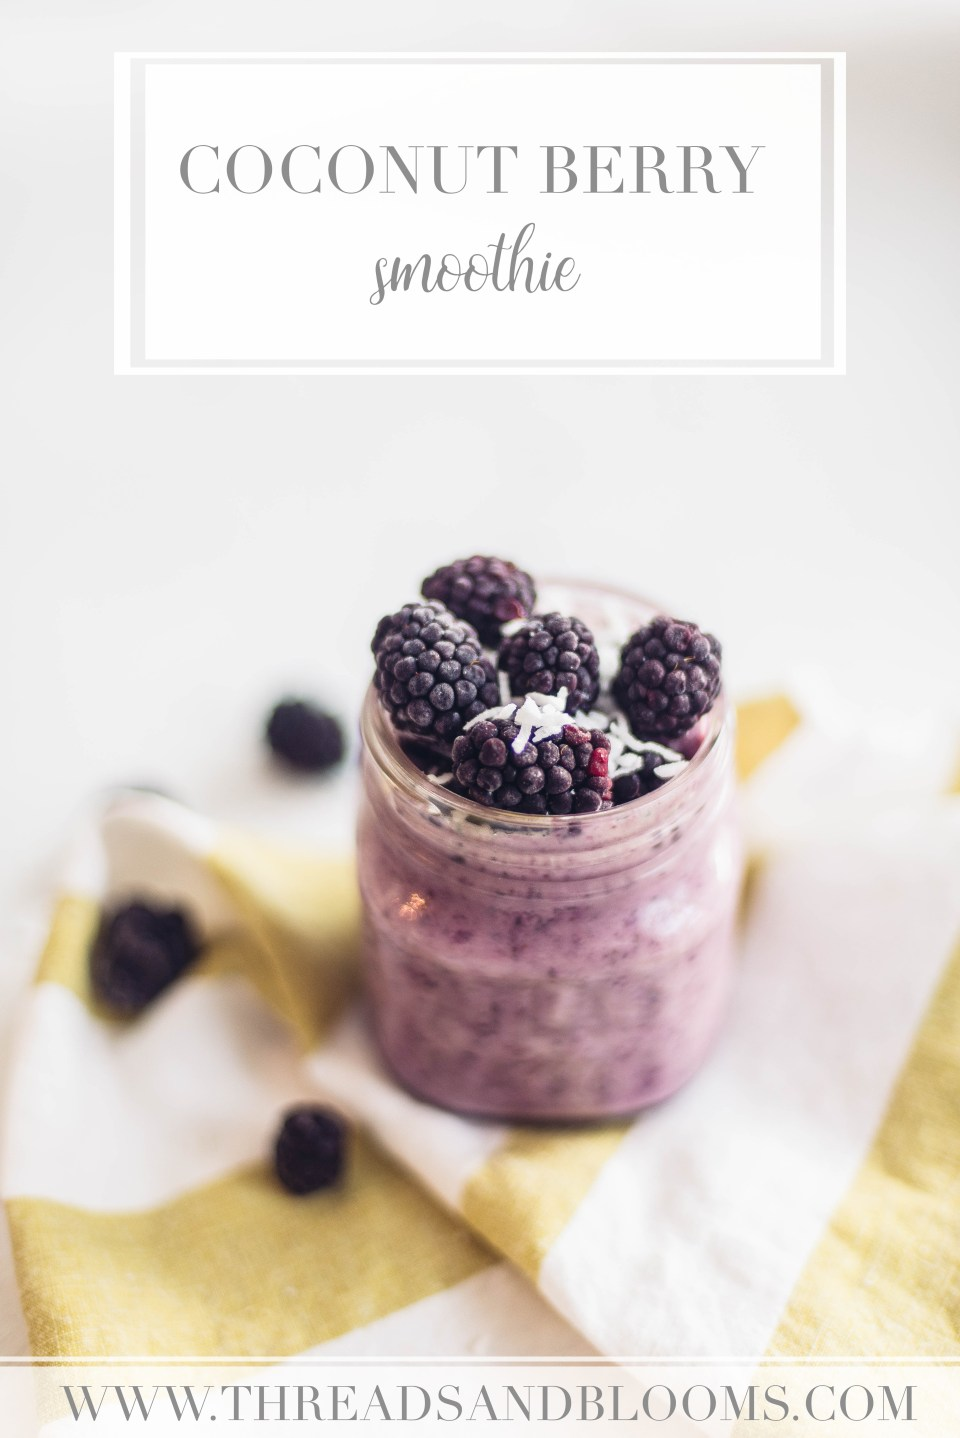 Coconut Milk Smoothie Recipe with berries, vanilla, and coconut flakes